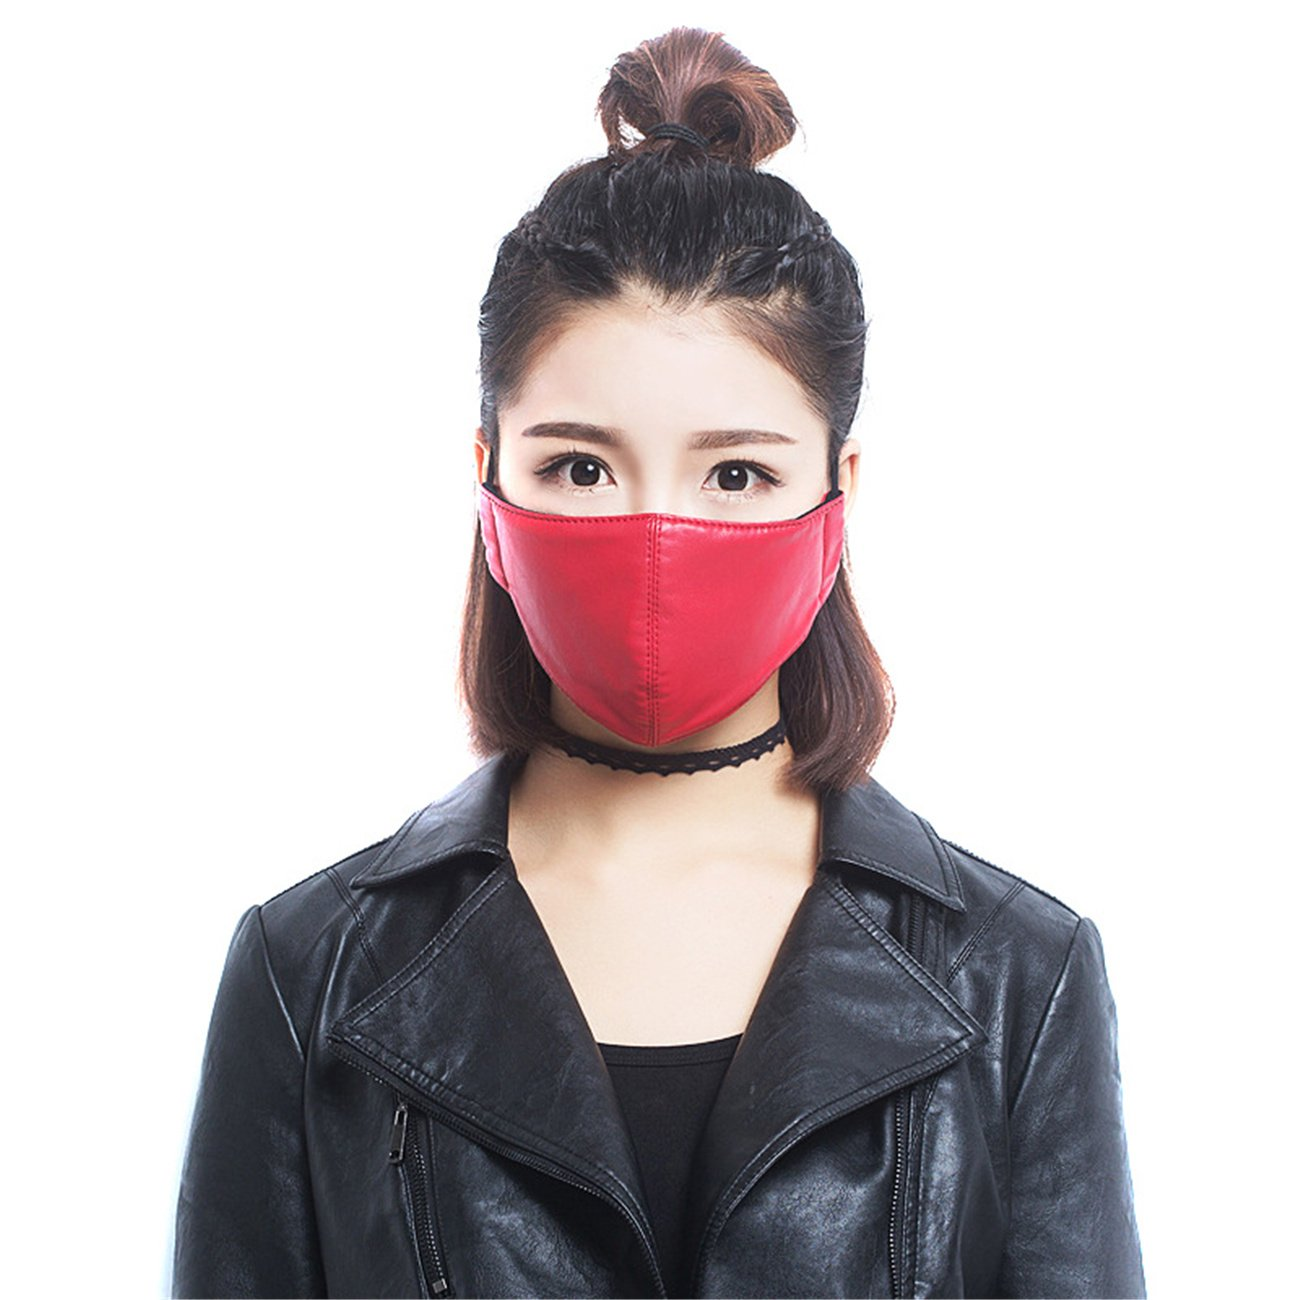 Personality Waterproof Anti-haze PU Leather Motorcycle Biker Dust Mouth Mask Outdoor Protection Face Mask for Men Women Travel (red)